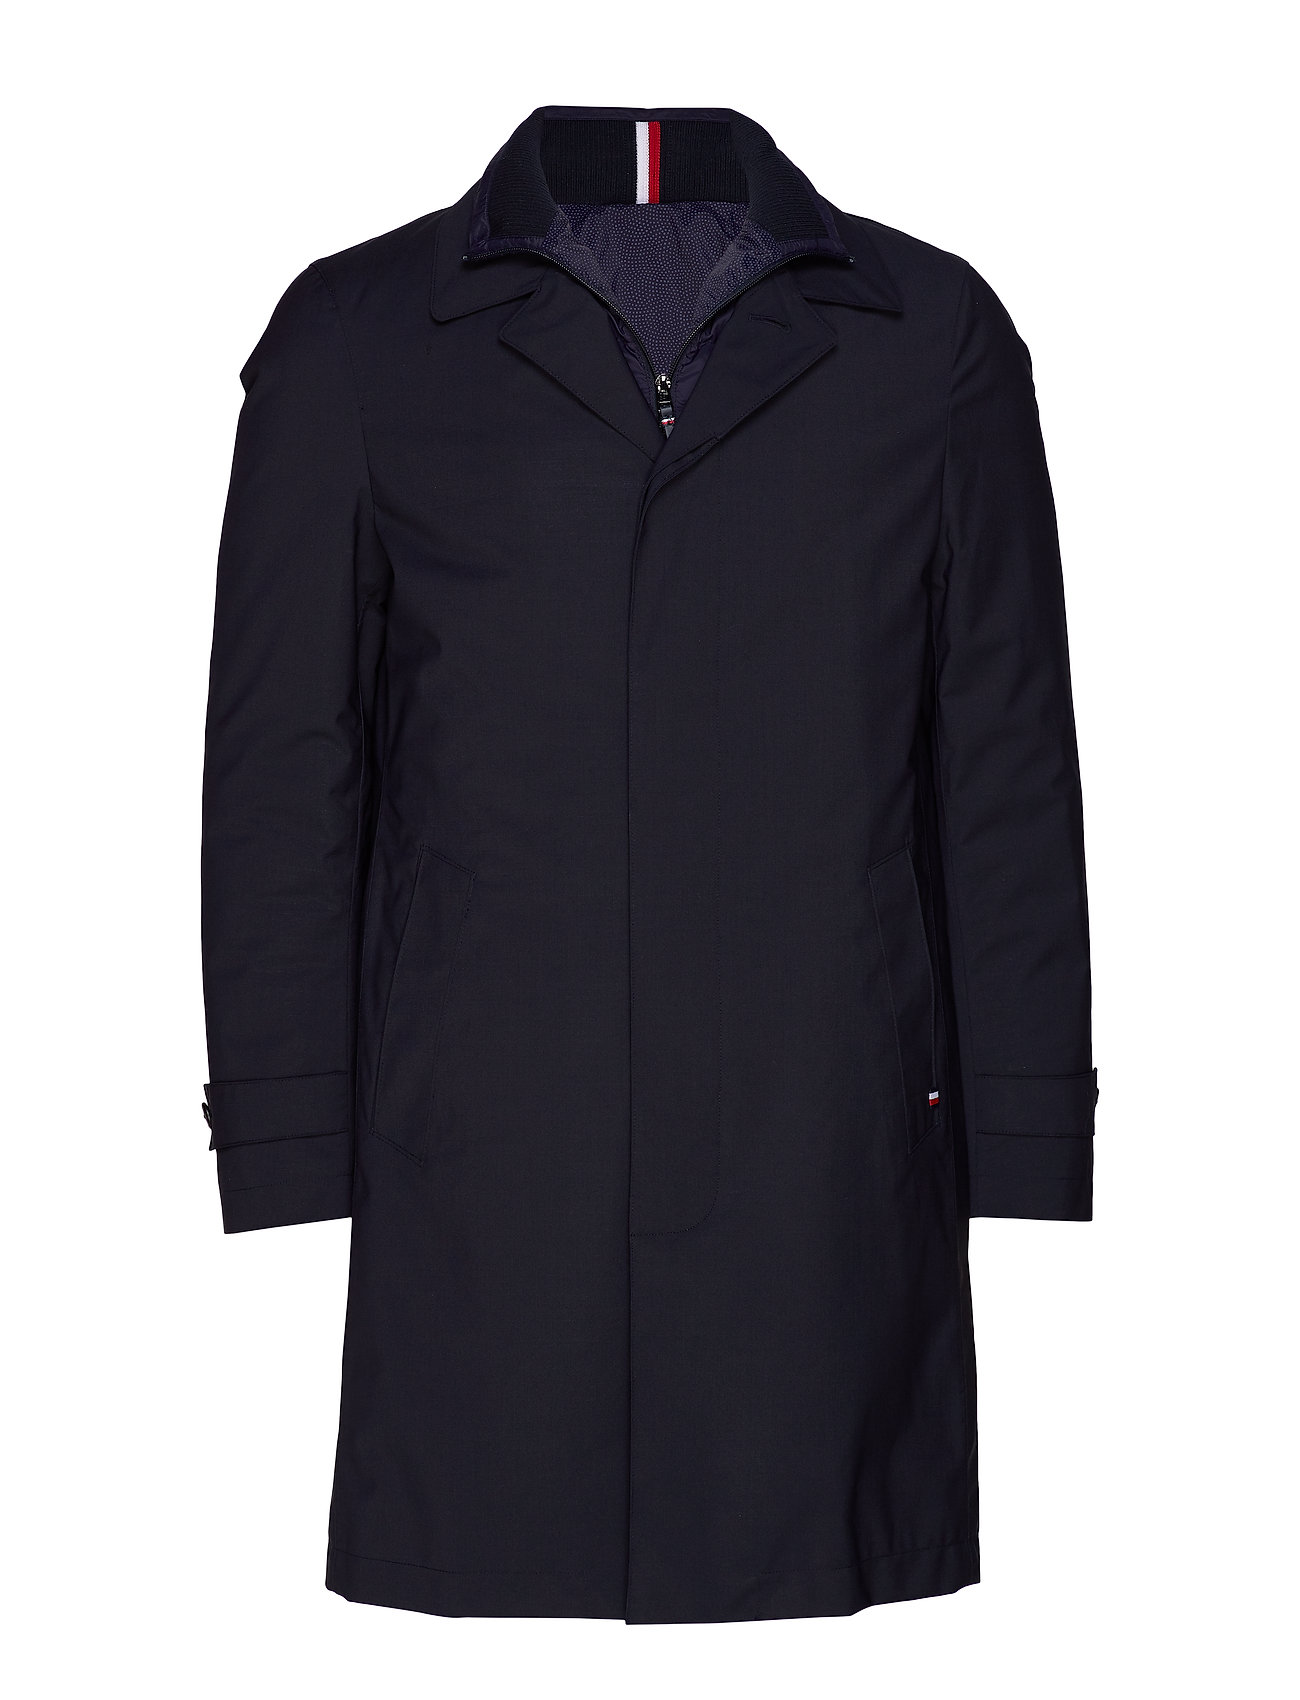 Tommy Hilfiger Tailored 3 IN 1 CARCOAT - SKY CAPTAIN